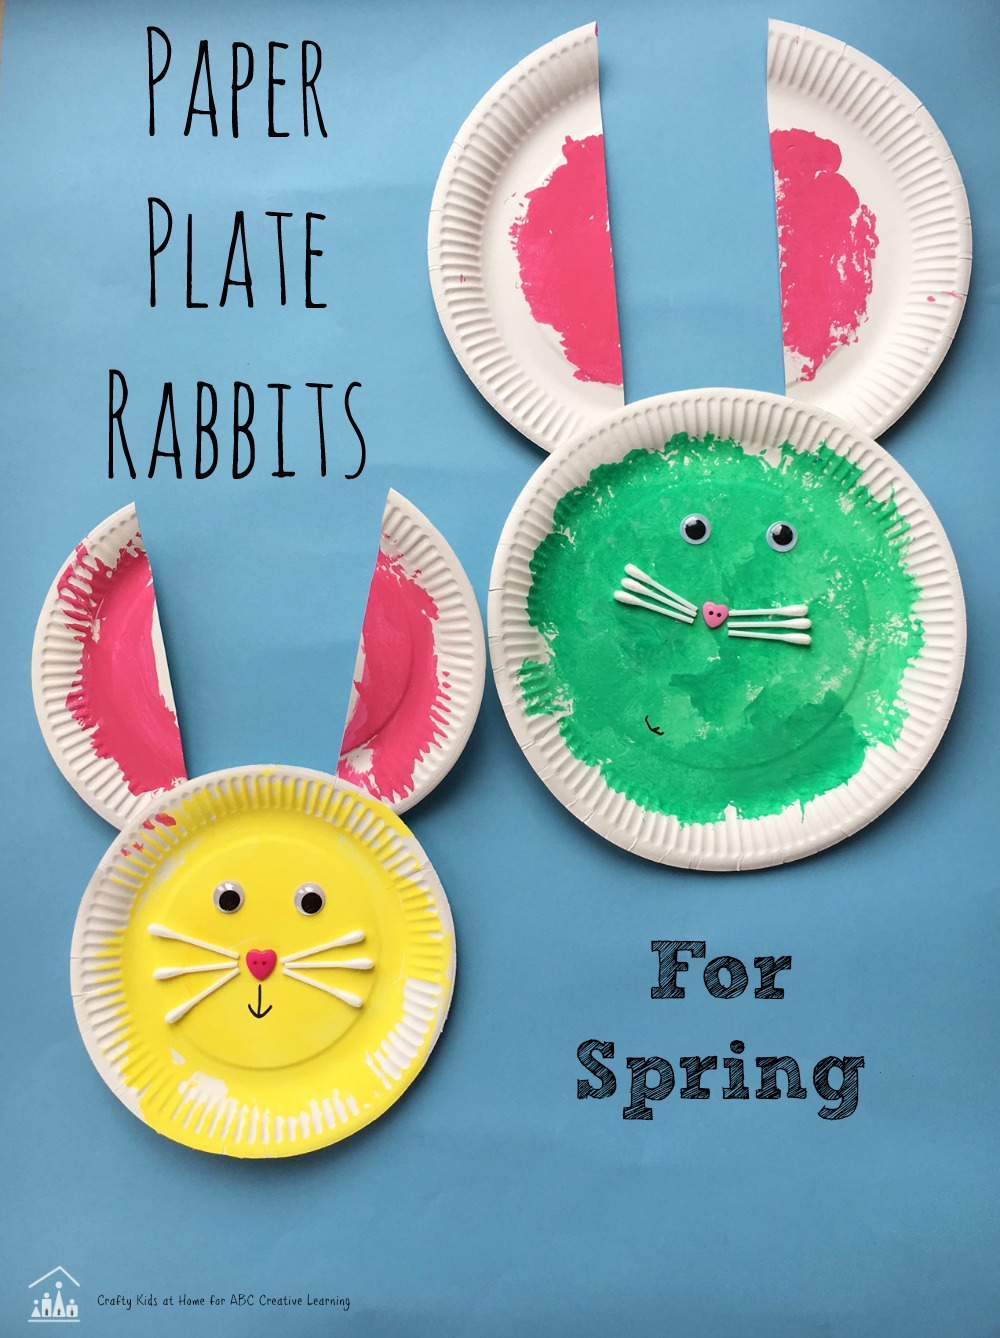 paper plate rabbits for spring PIN